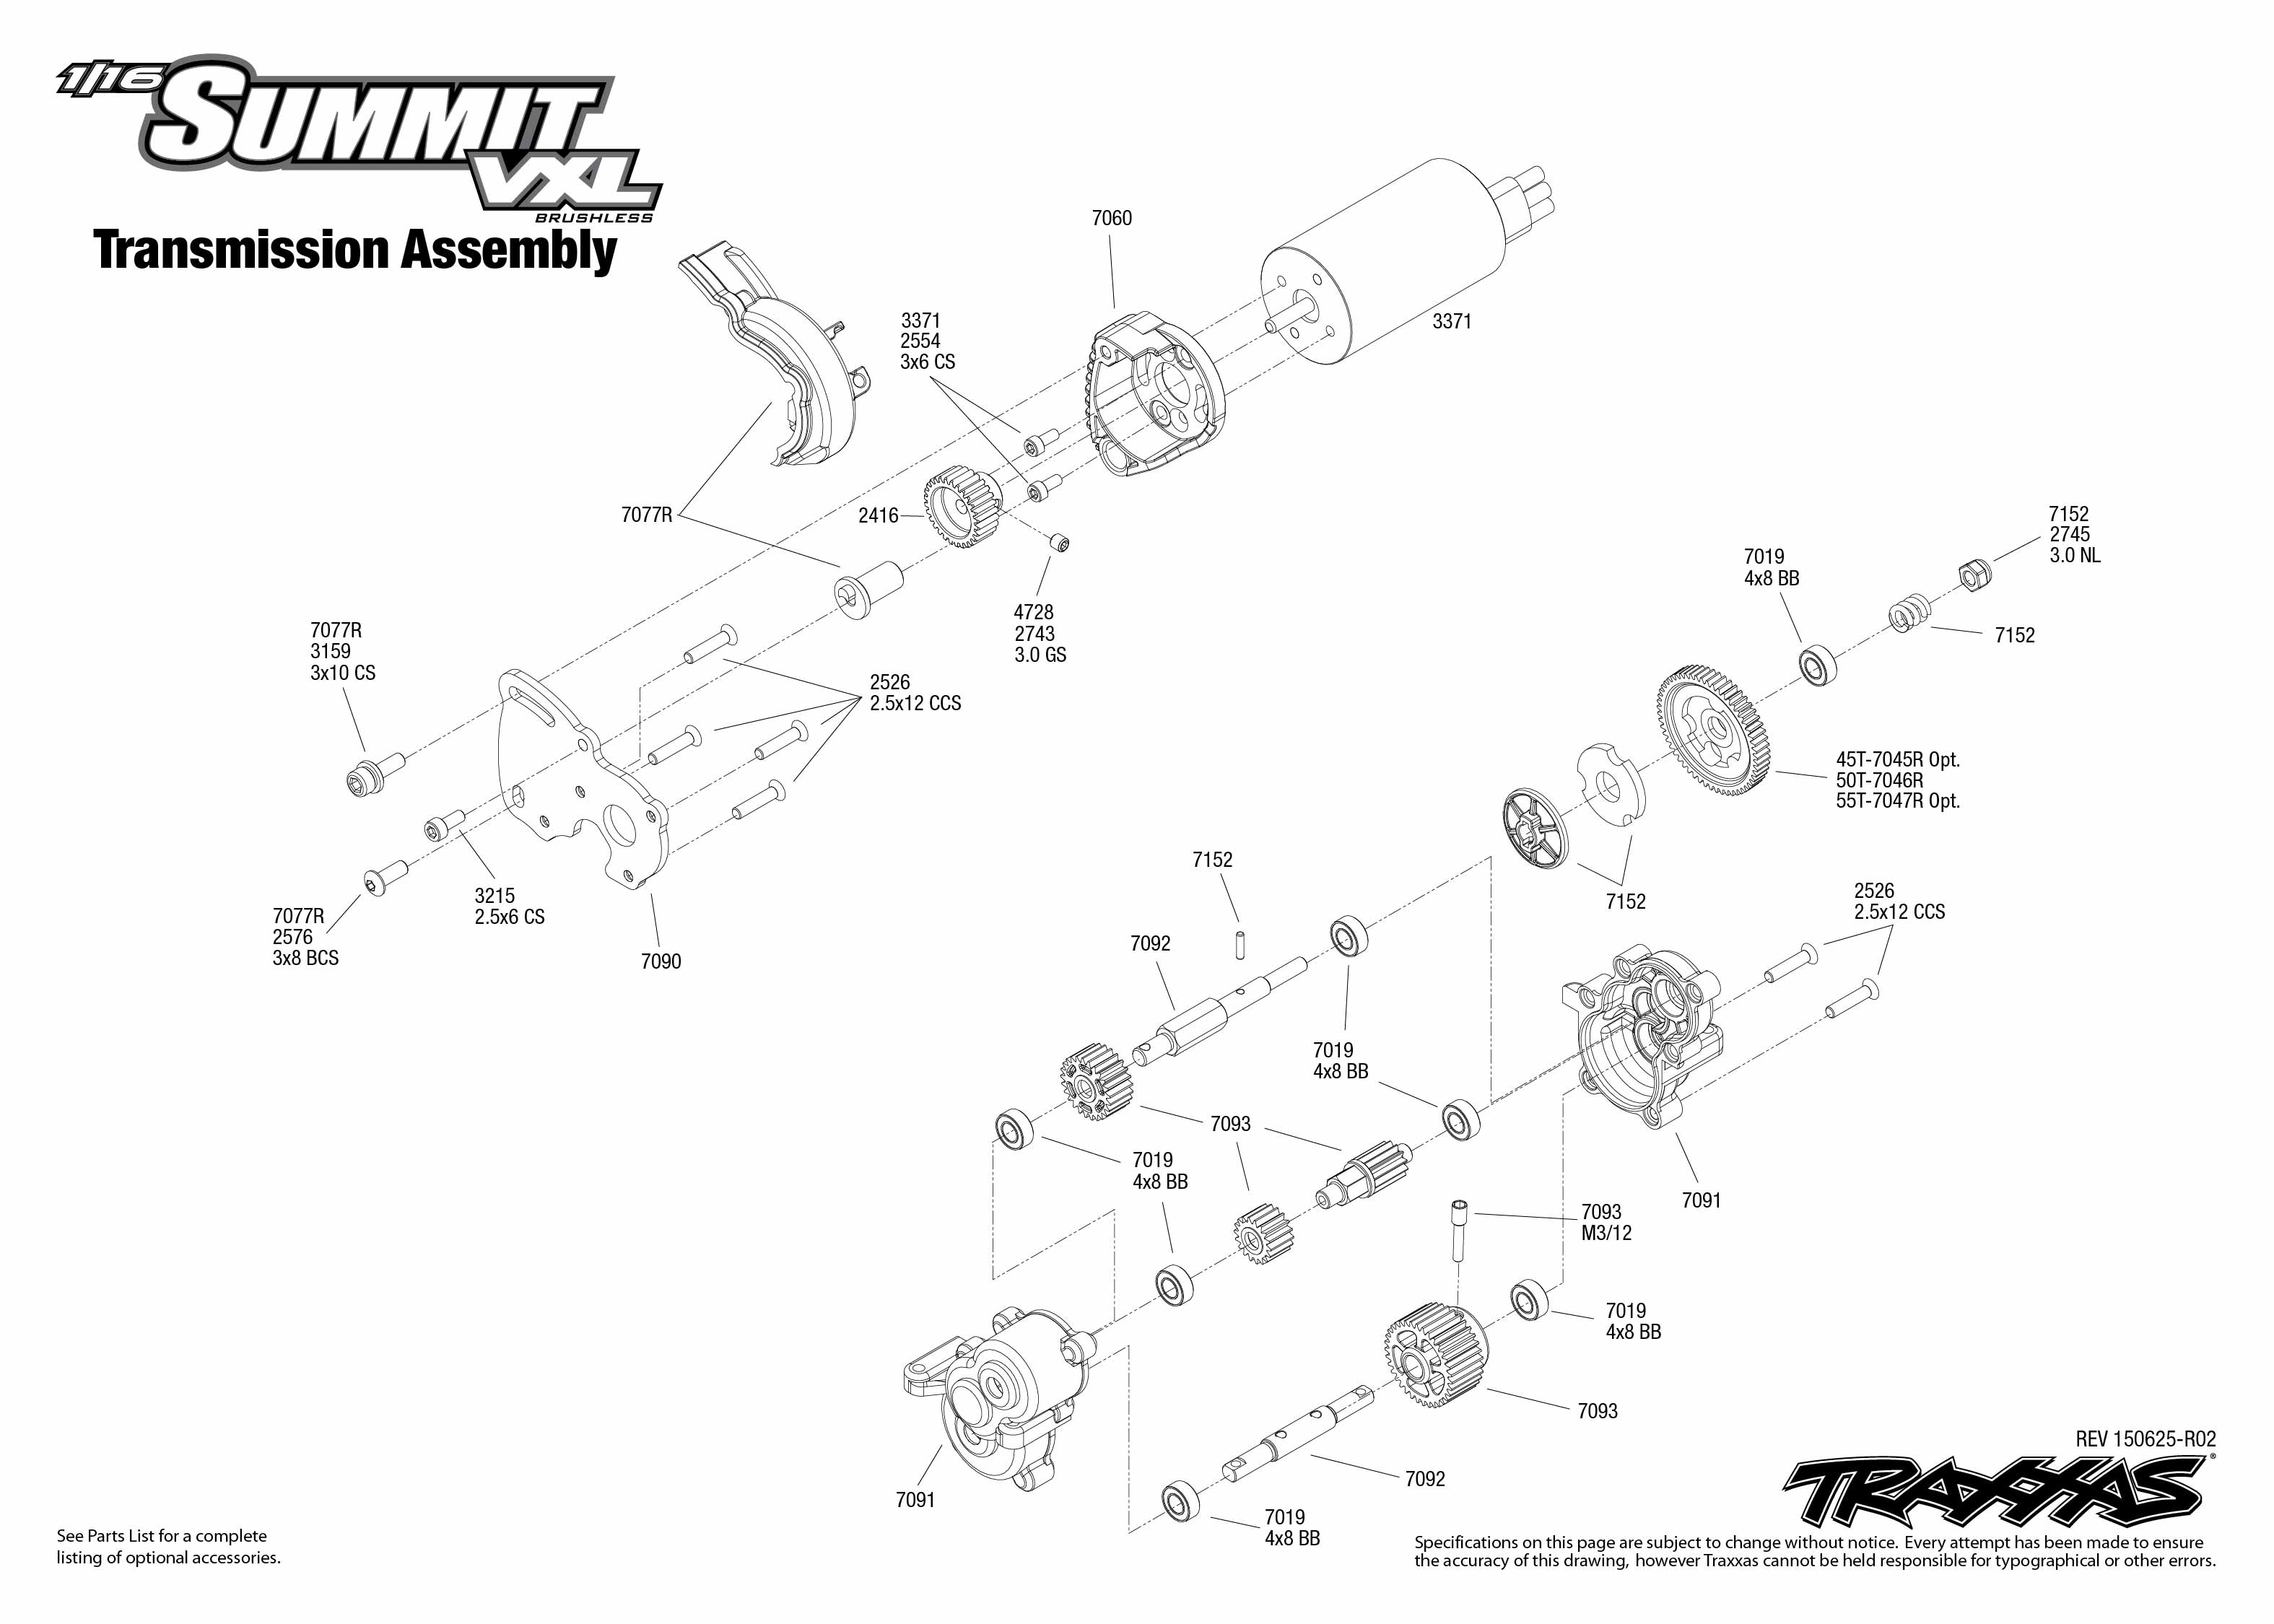 1/16 Summit VXL (72074-1) Transmission Assembly Exploded